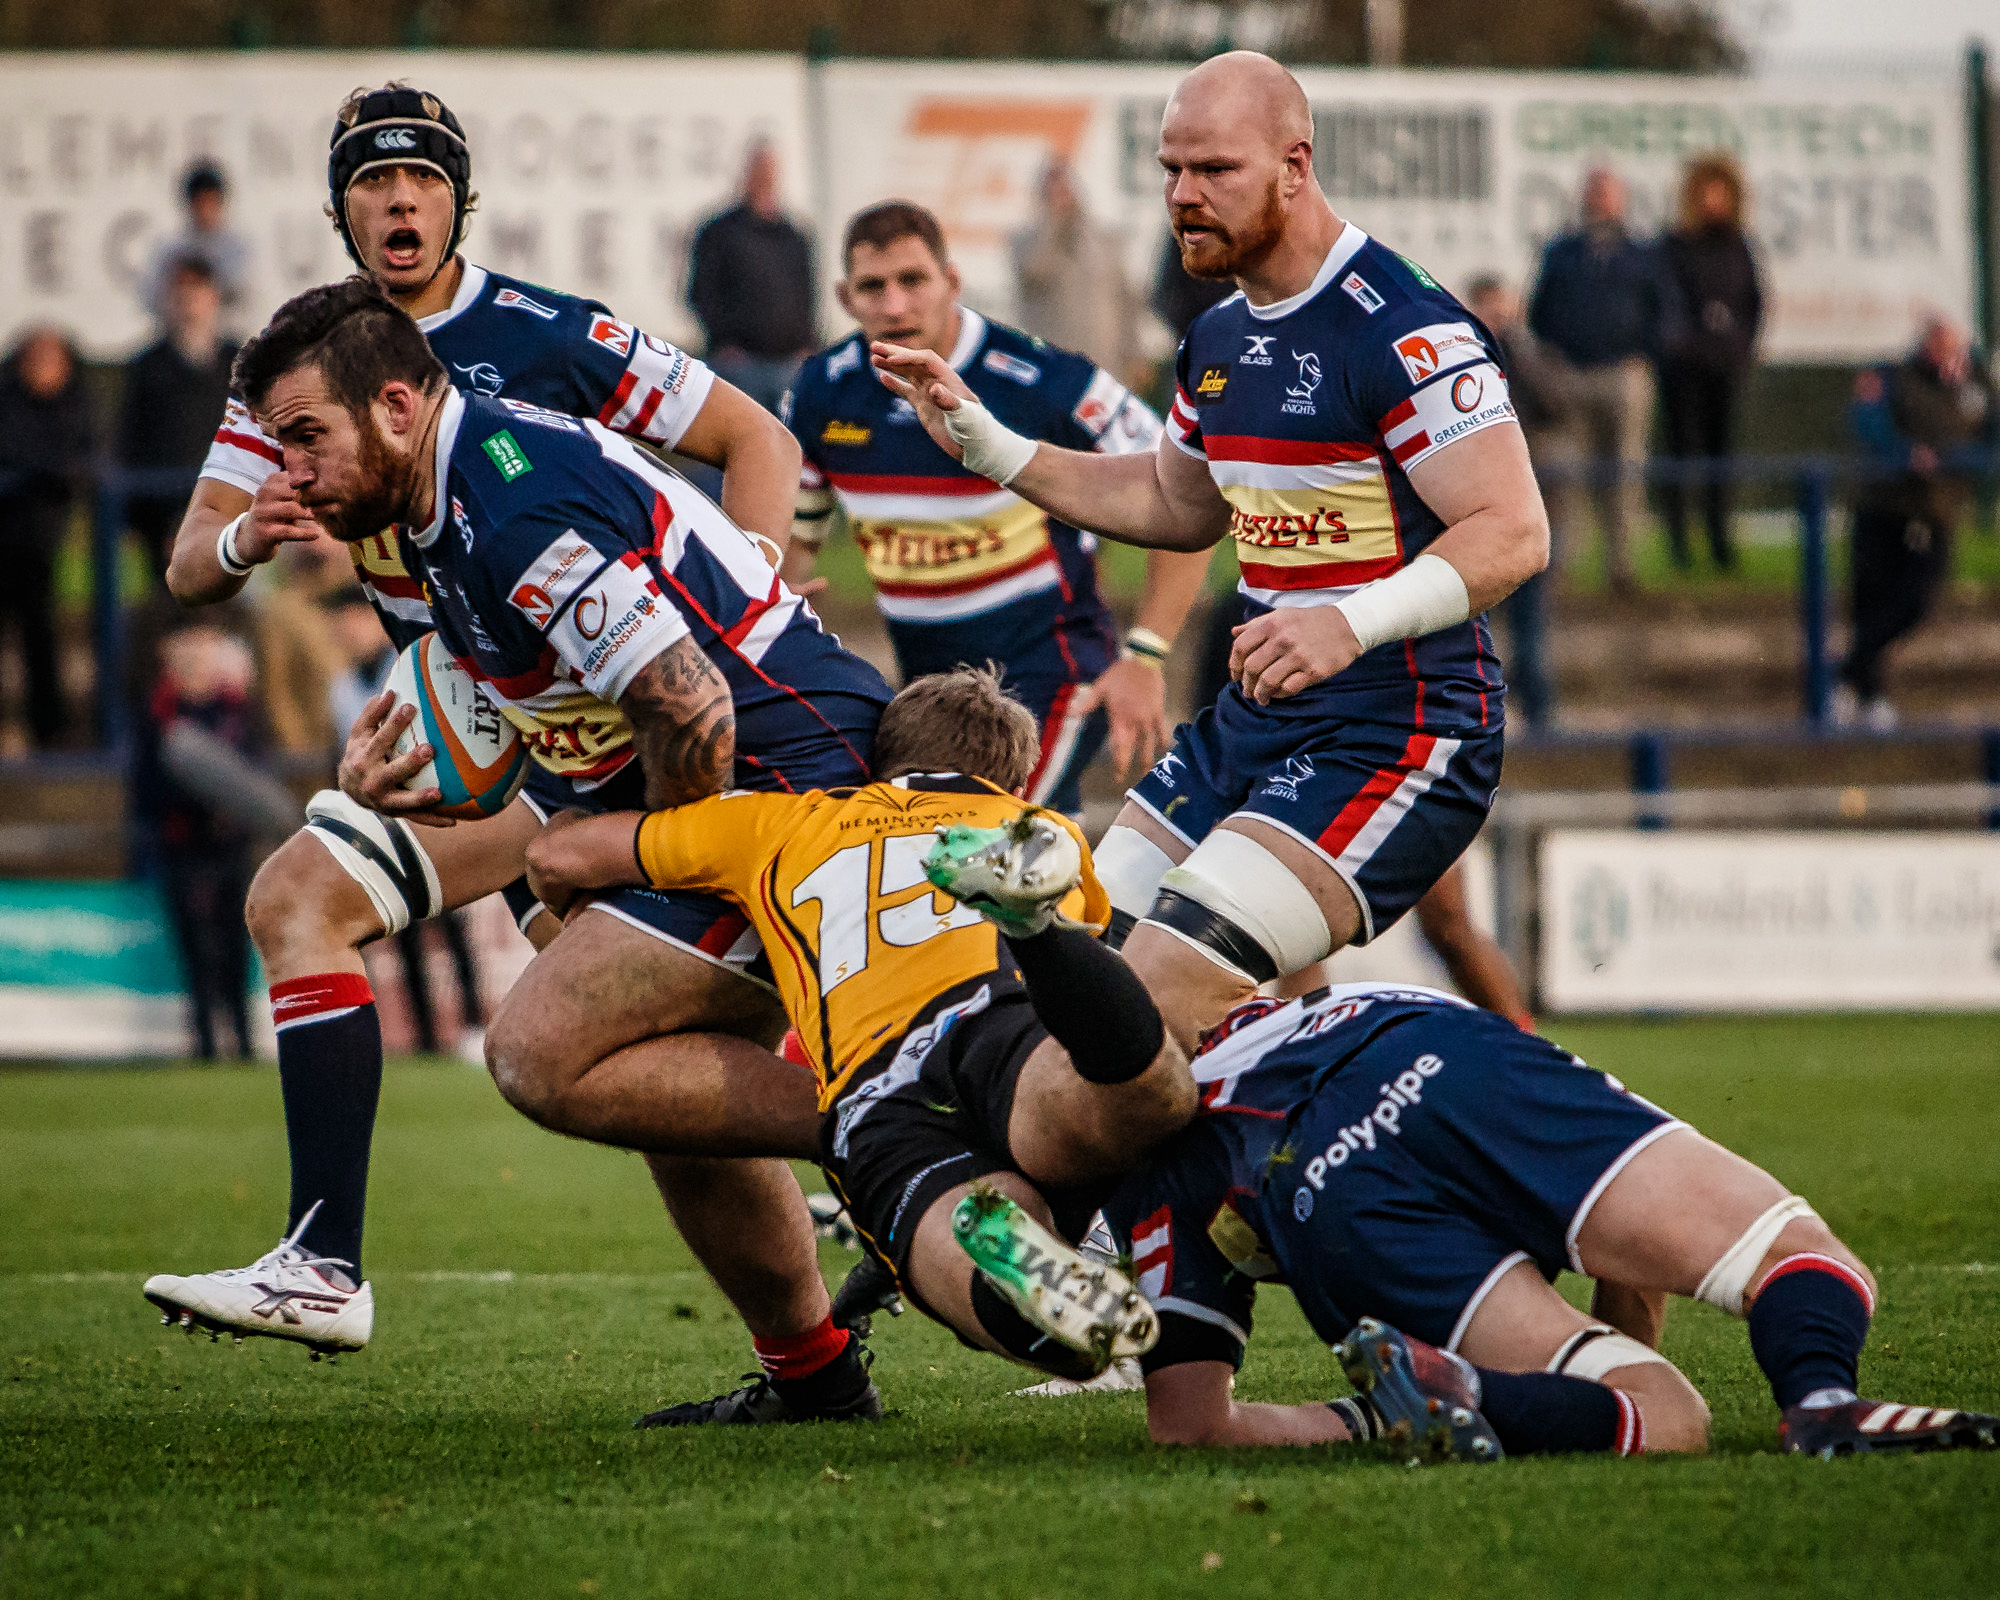 Owen Williams (I think) Driving Forward - love the airborne tackler!